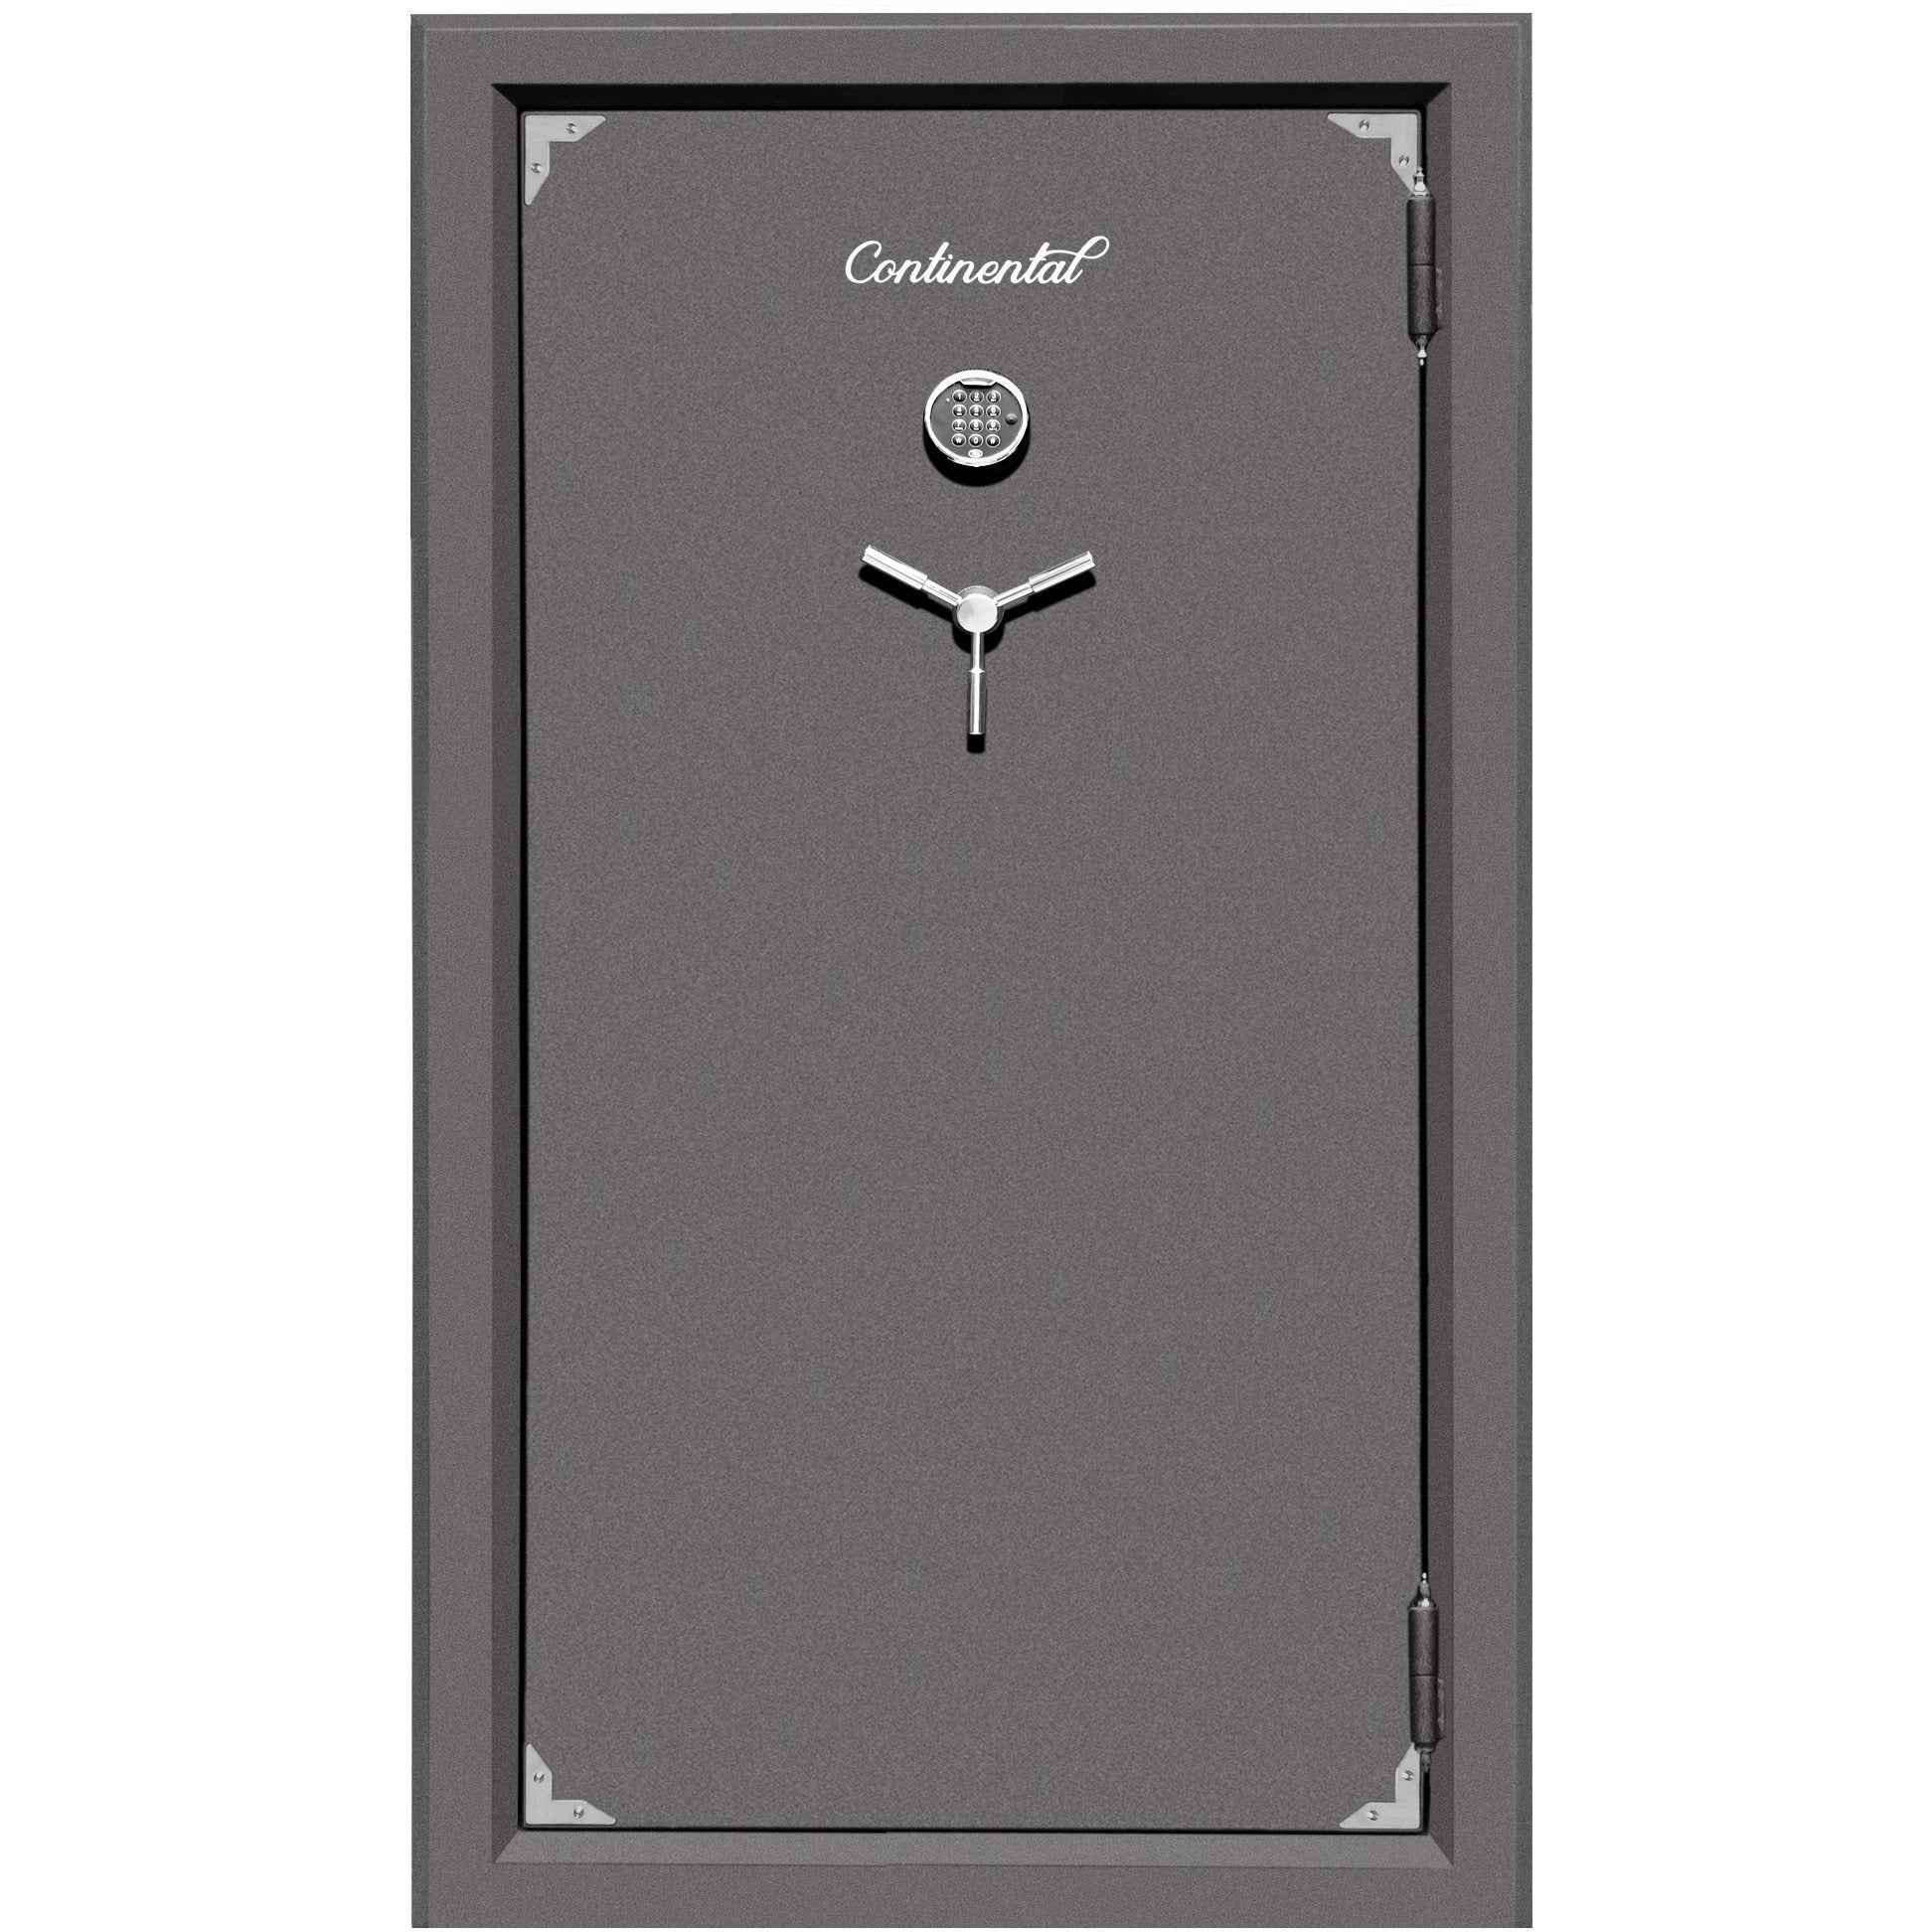 Hollon Safe Gun Safe Hollon Safe Gun Safe - Continental Series Gun Safe C-42 - 42 Gun Storage Safe C-42